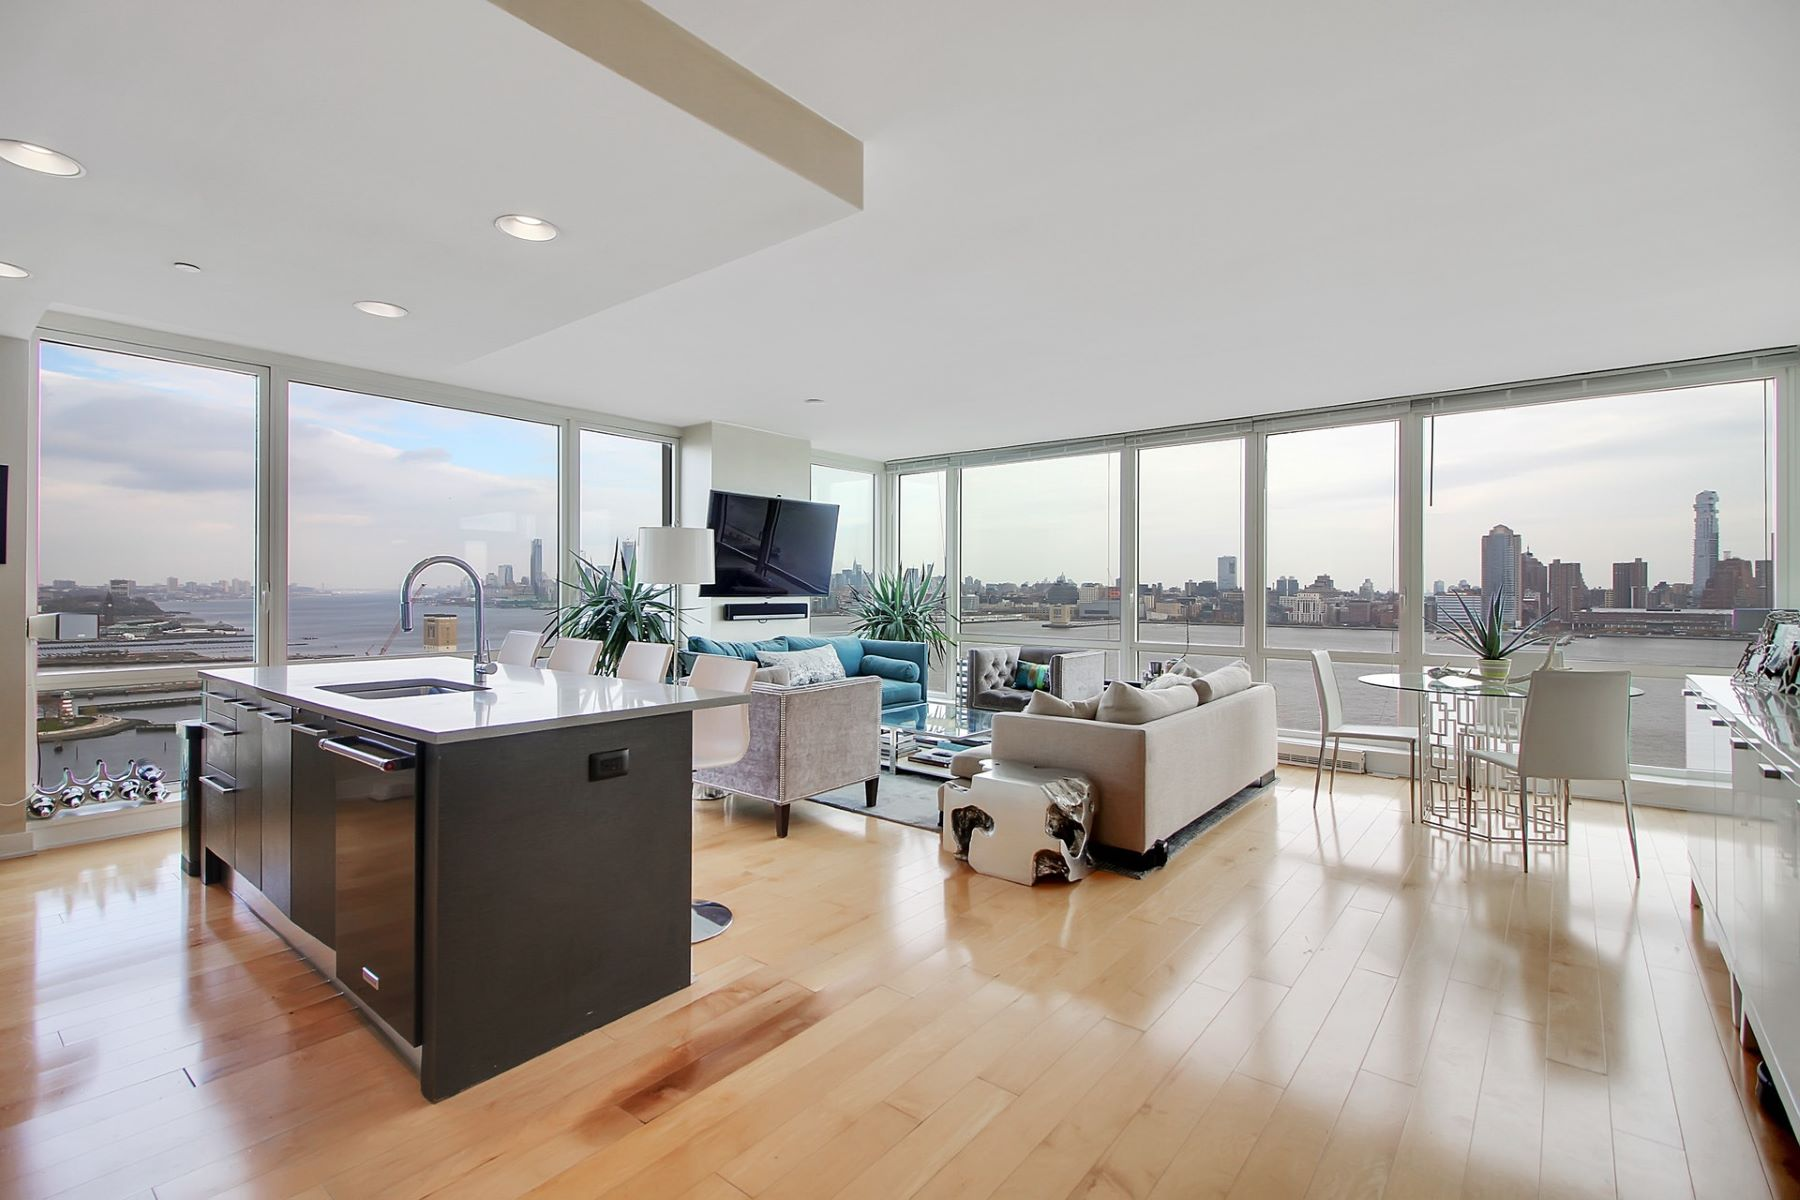 Apartment for Rent at World Class Luxury Awaits You 2 2nd Street #2202, Jersey City, New Jersey 07302 United States